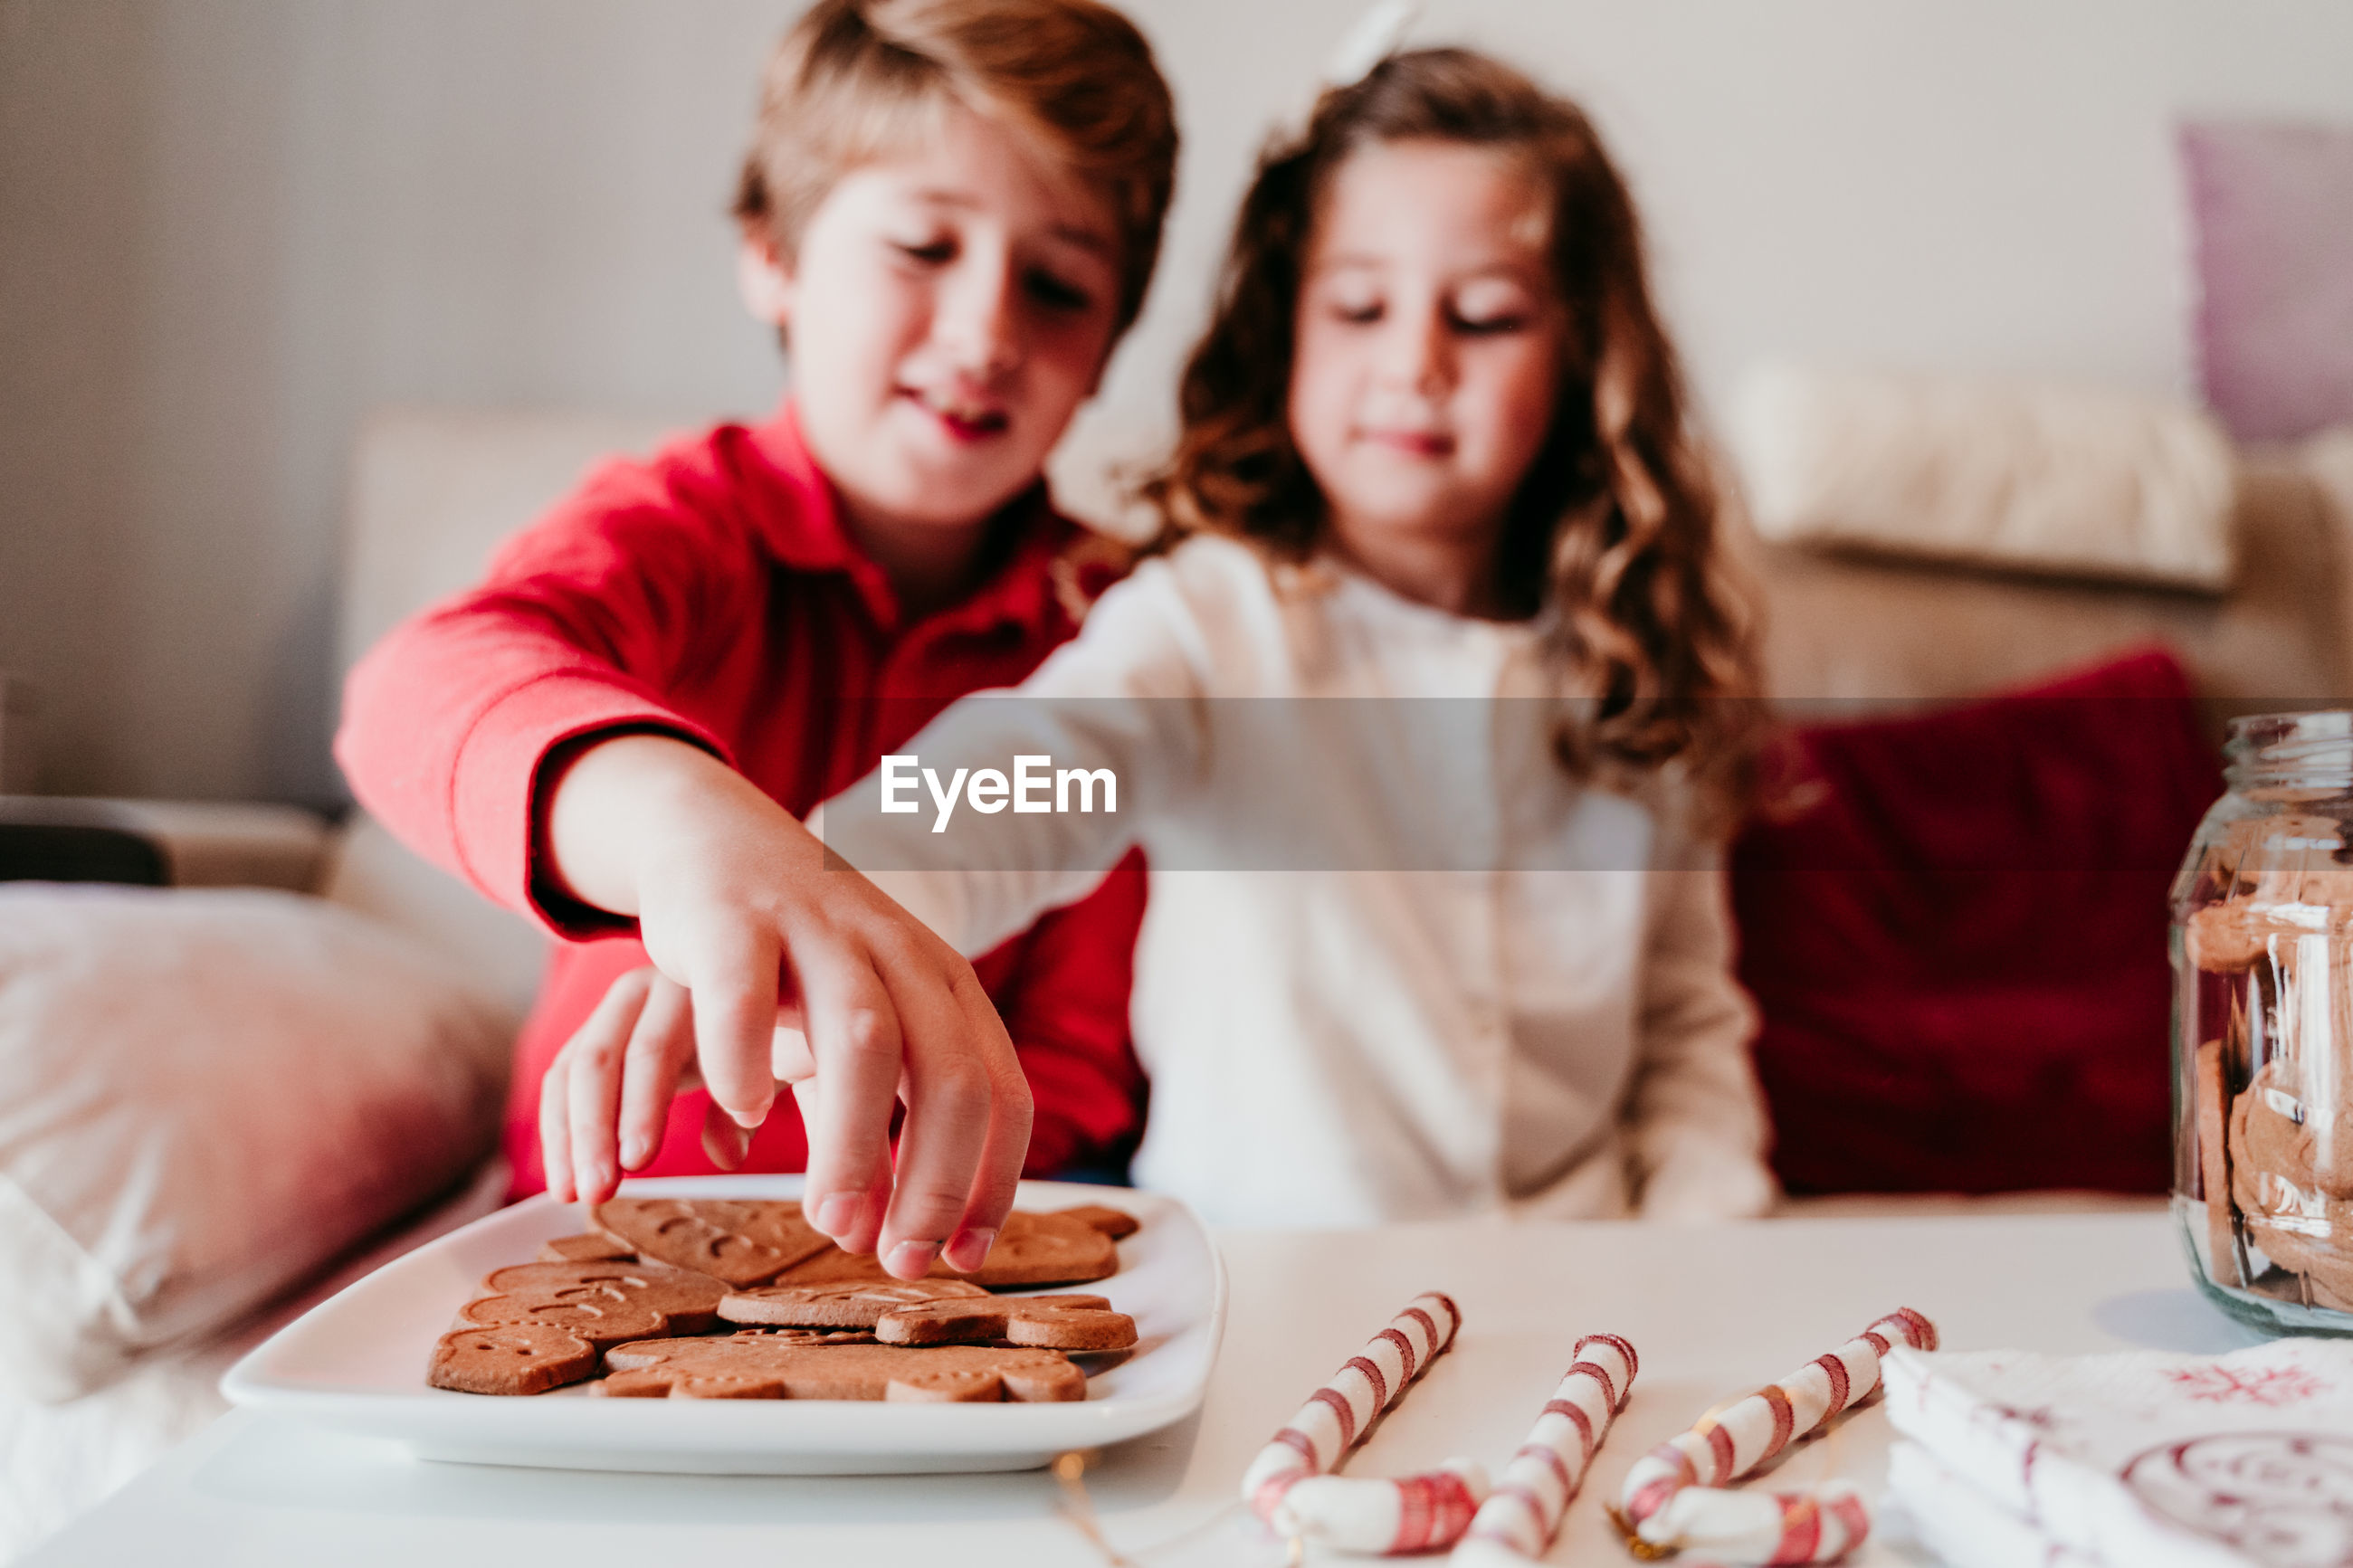 Siblings sitting by food on table at home